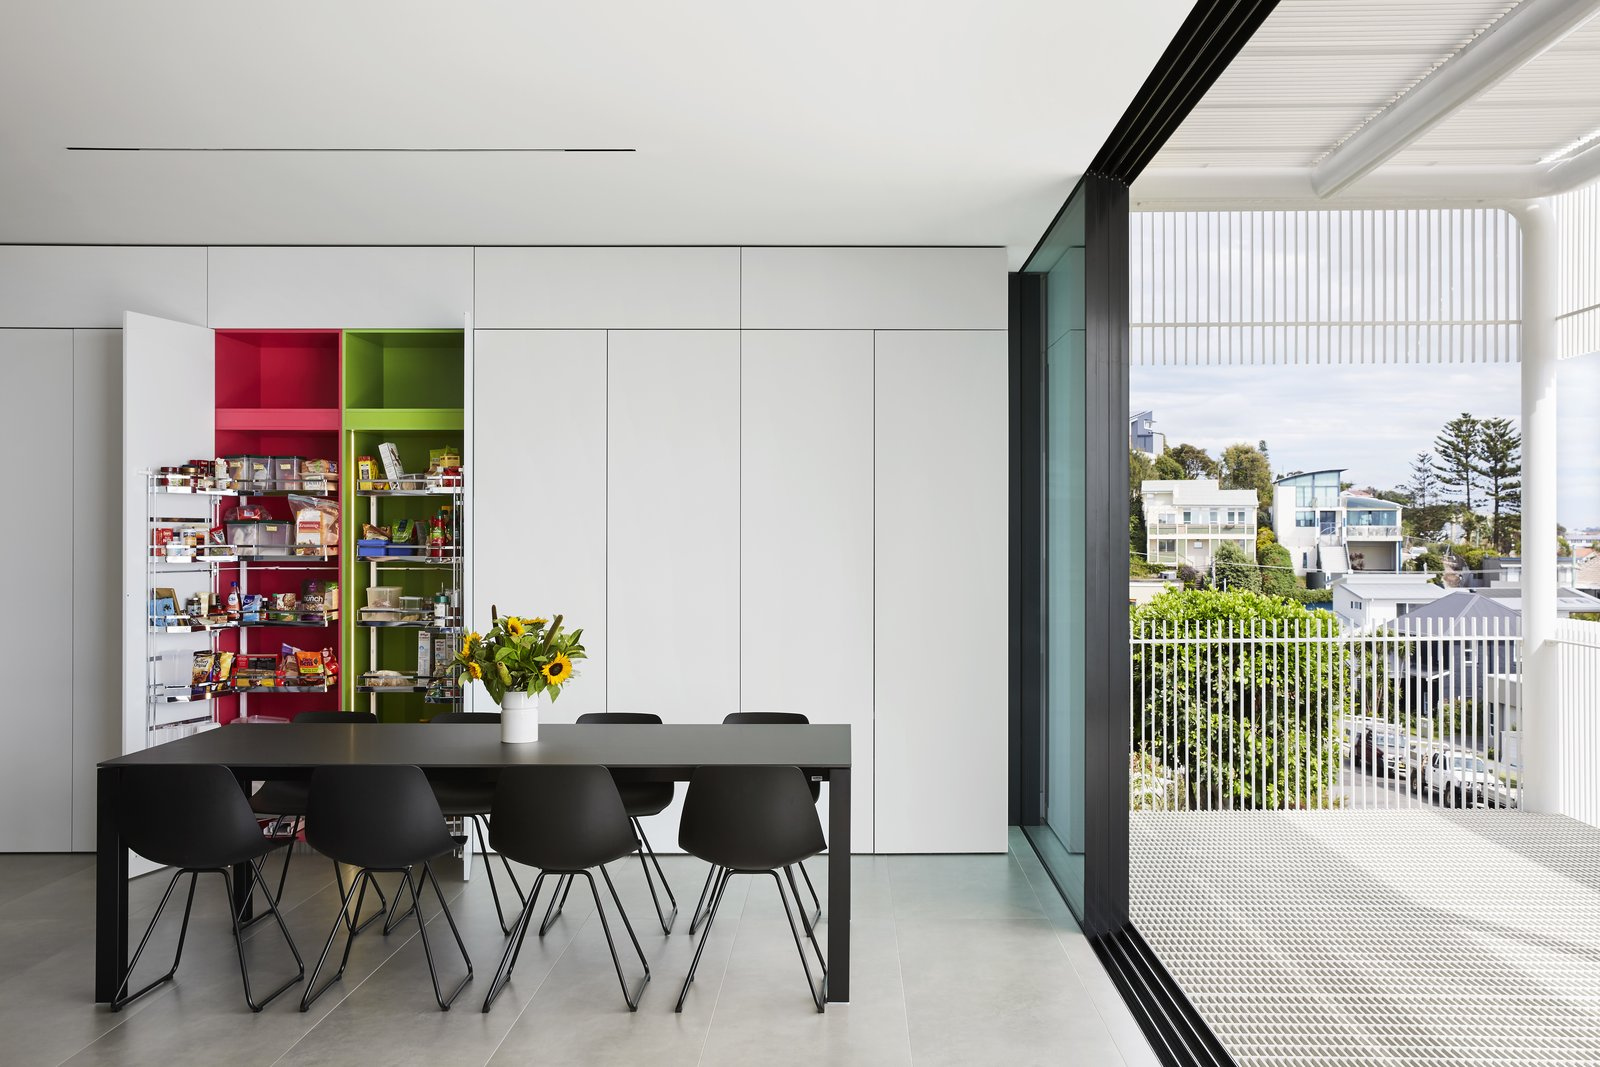 Dining Room, Storage, Table, and Chair Sleek cabinetry extends from the kitchen into the dining room for extra storage.  Best Photos from A Futuristic Abode in Australia Draws Inspiration From Star Wars